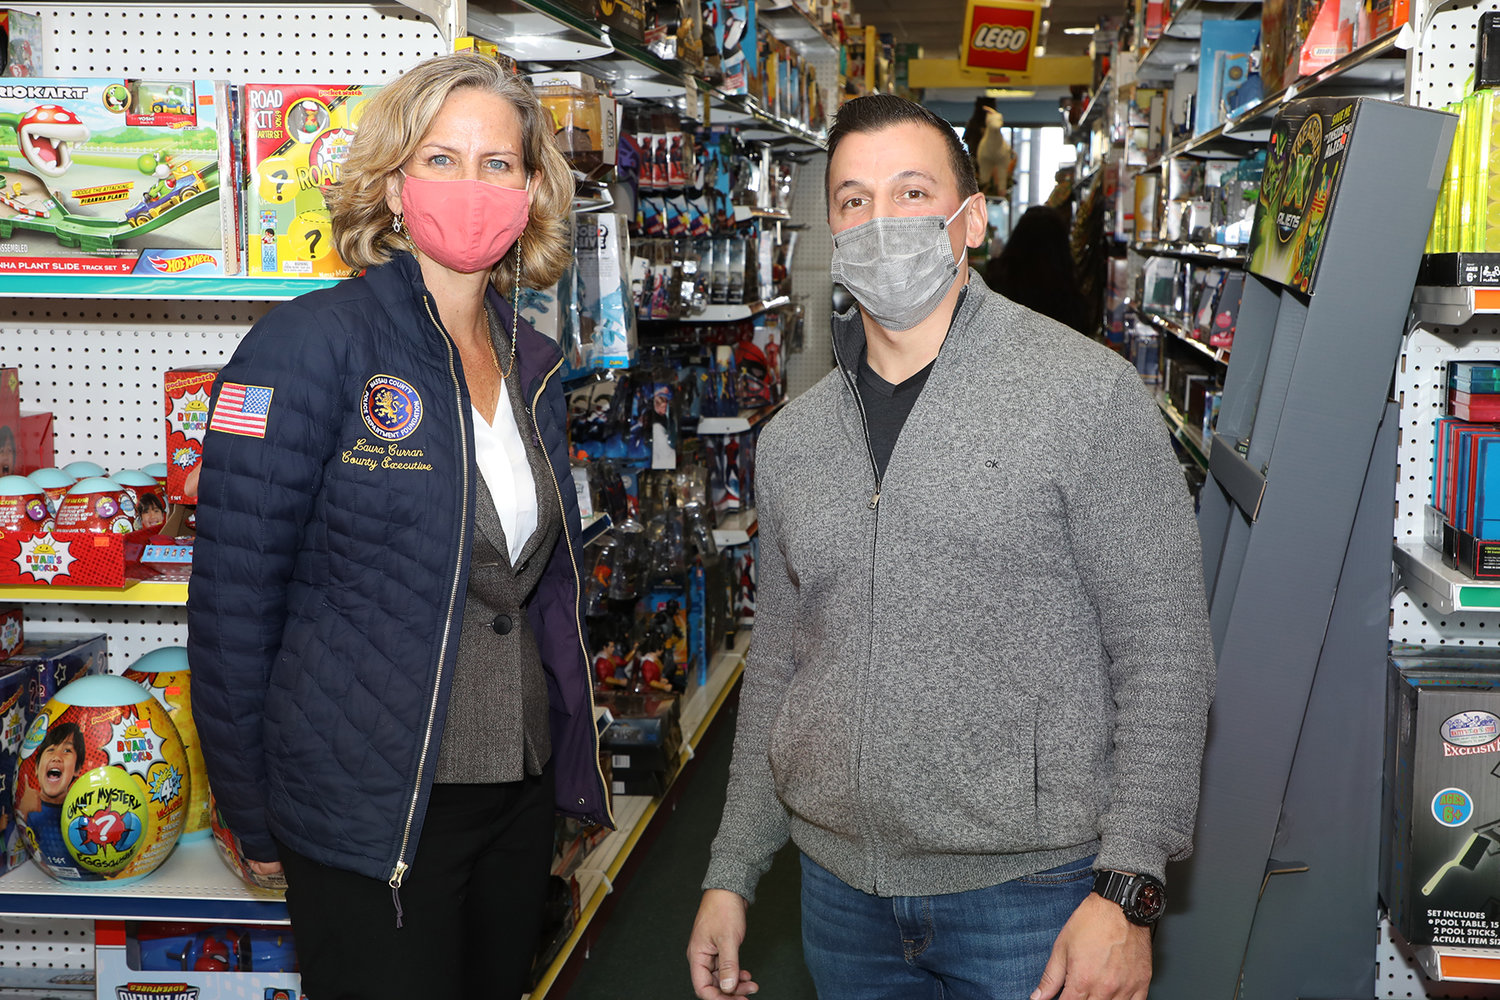 Nassau County Executive Laura Curran with Sean McQuade, owner of Matty's Toy Stop, at a news conference on Nov. 20.